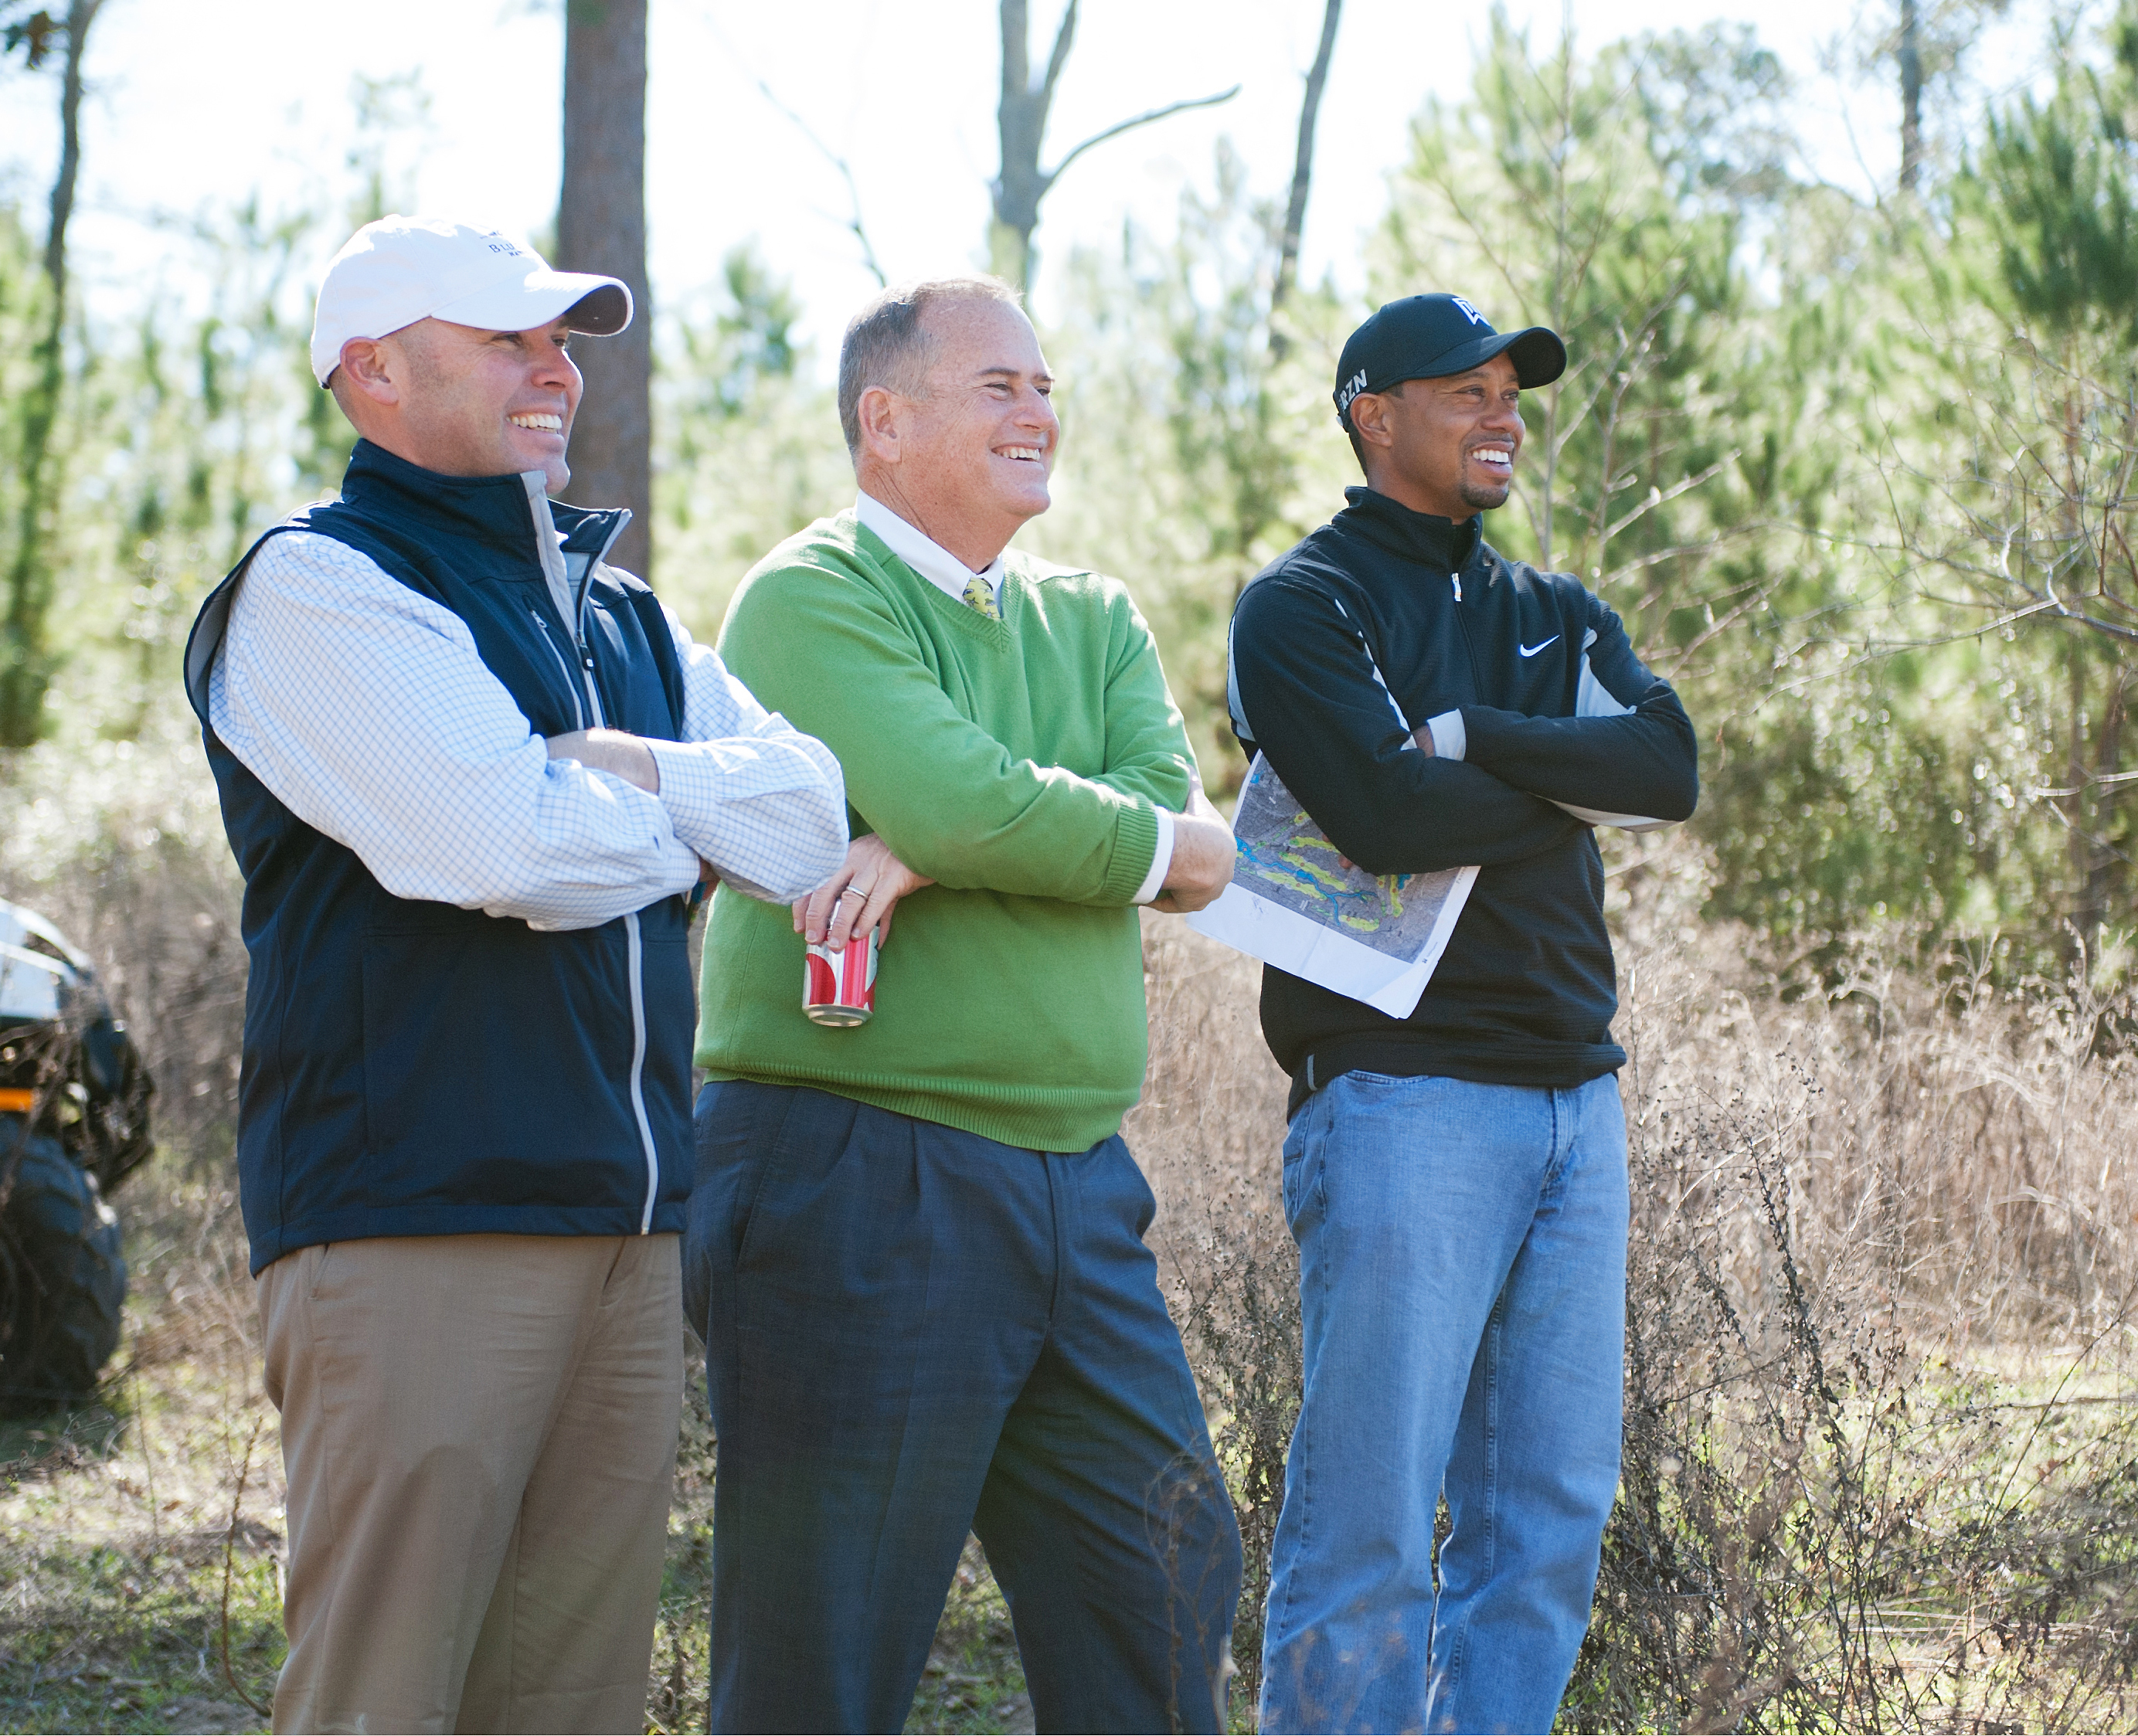 Tiger Woods to Design Golf Course at Bluejack National in Texas. (L to R) Beacon Land Development partners Casey Paulson and Michael Abbott meet with Tiger Woods during a site visit of Bluejack National's future golf course. (Photo: Business Wire)